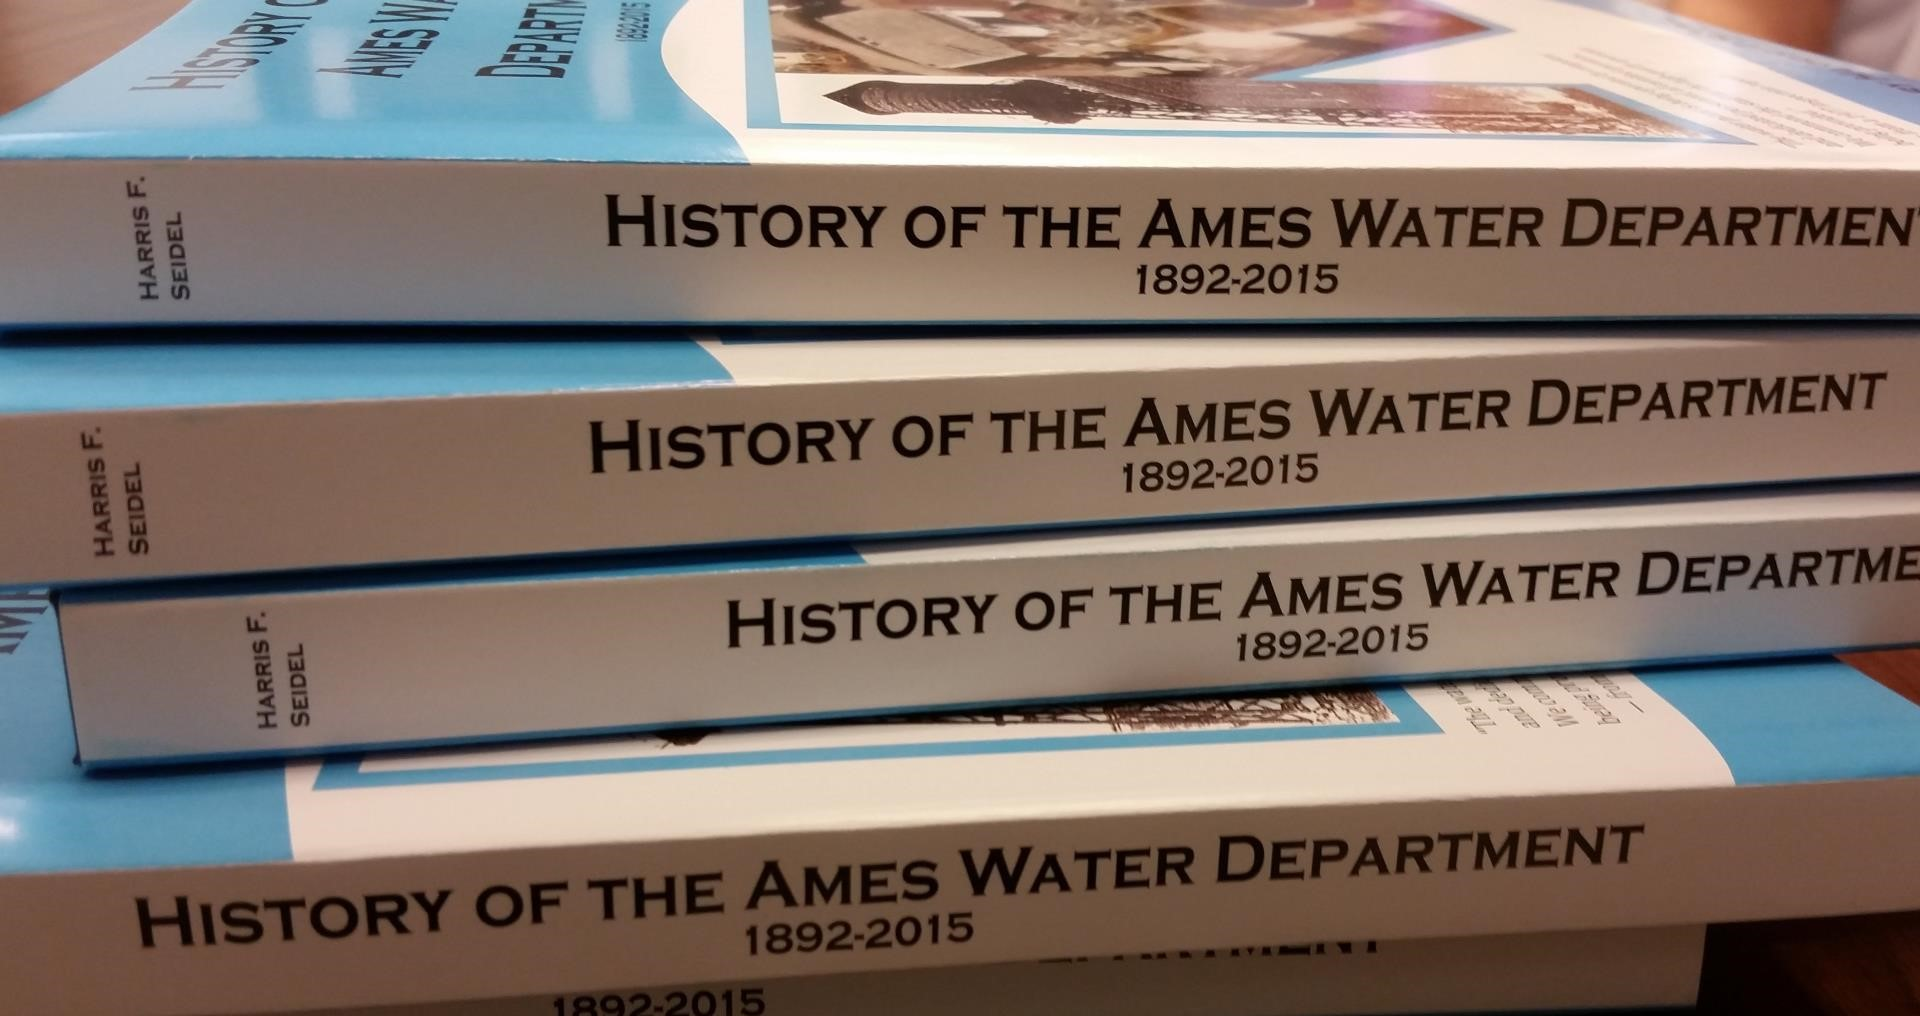 Stack of History of the Ames Water Department books